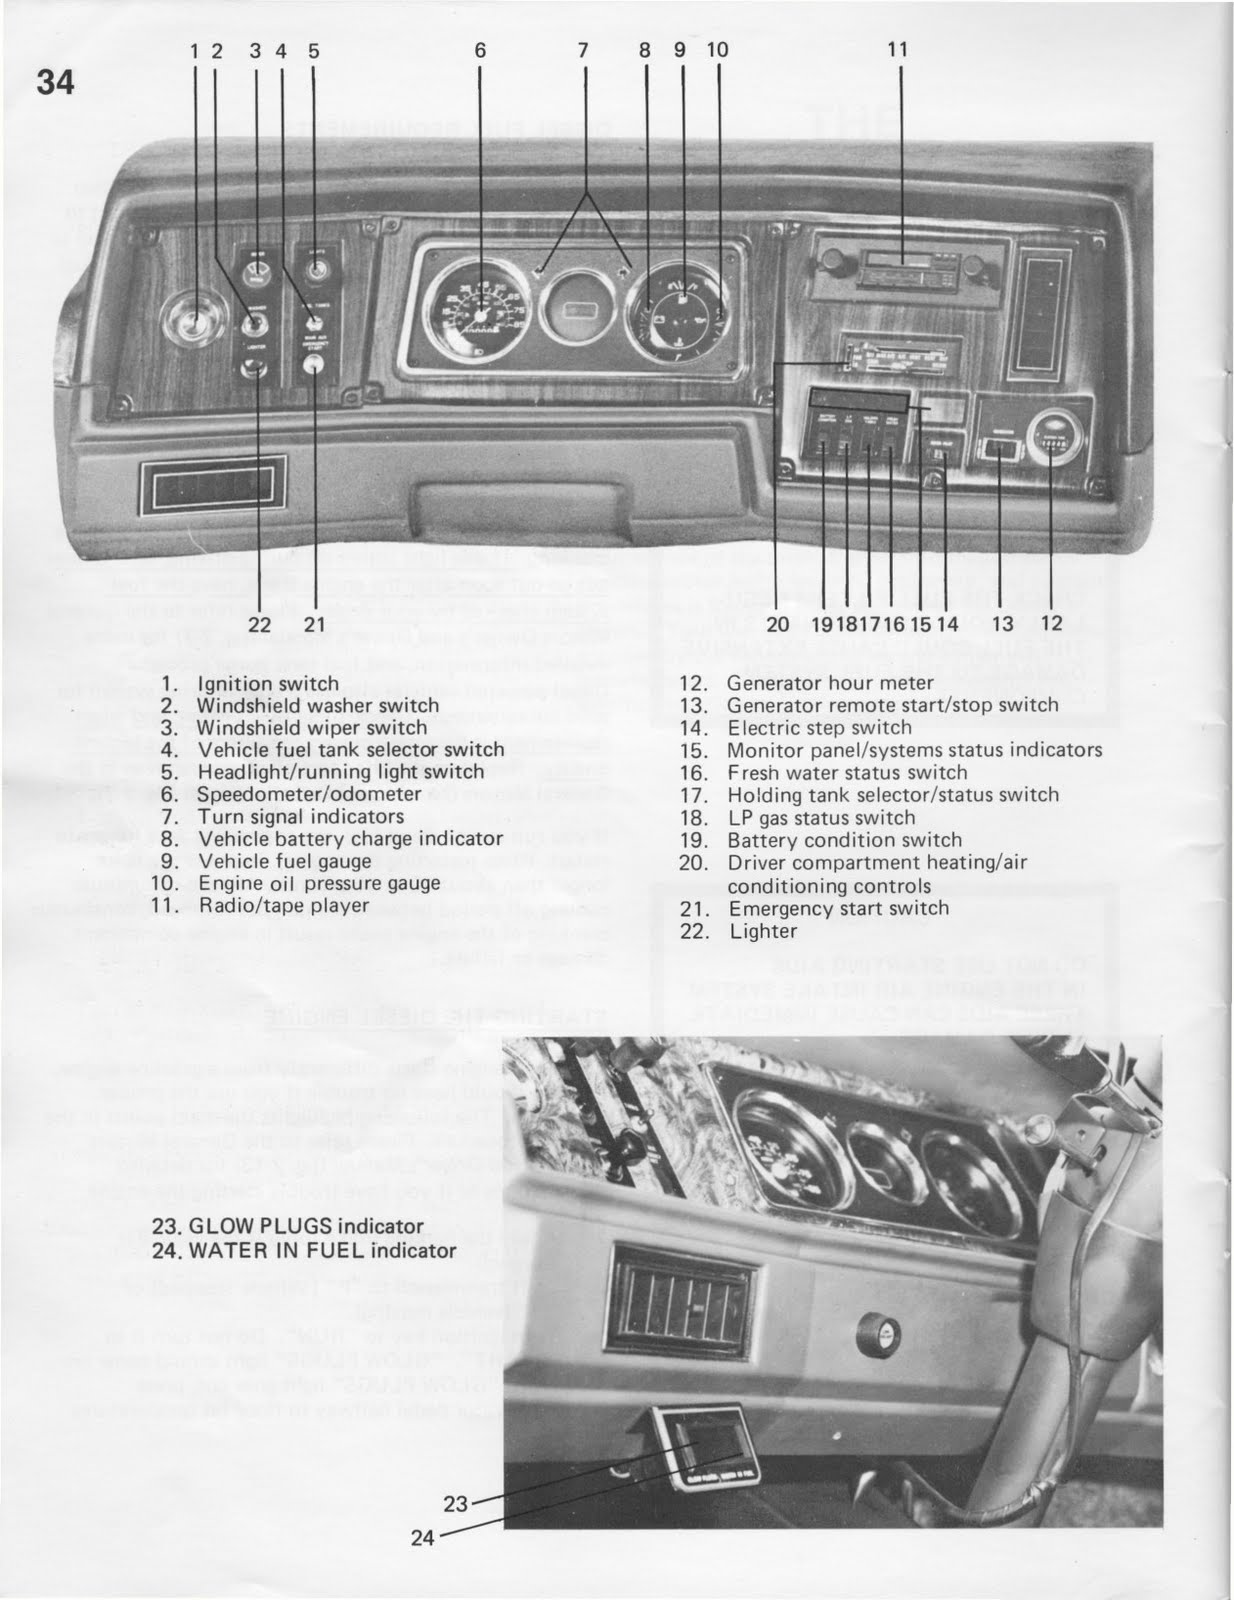 Coleman Rv Air Conditioner Wiring Diagram Middle Passage Slave Ship For